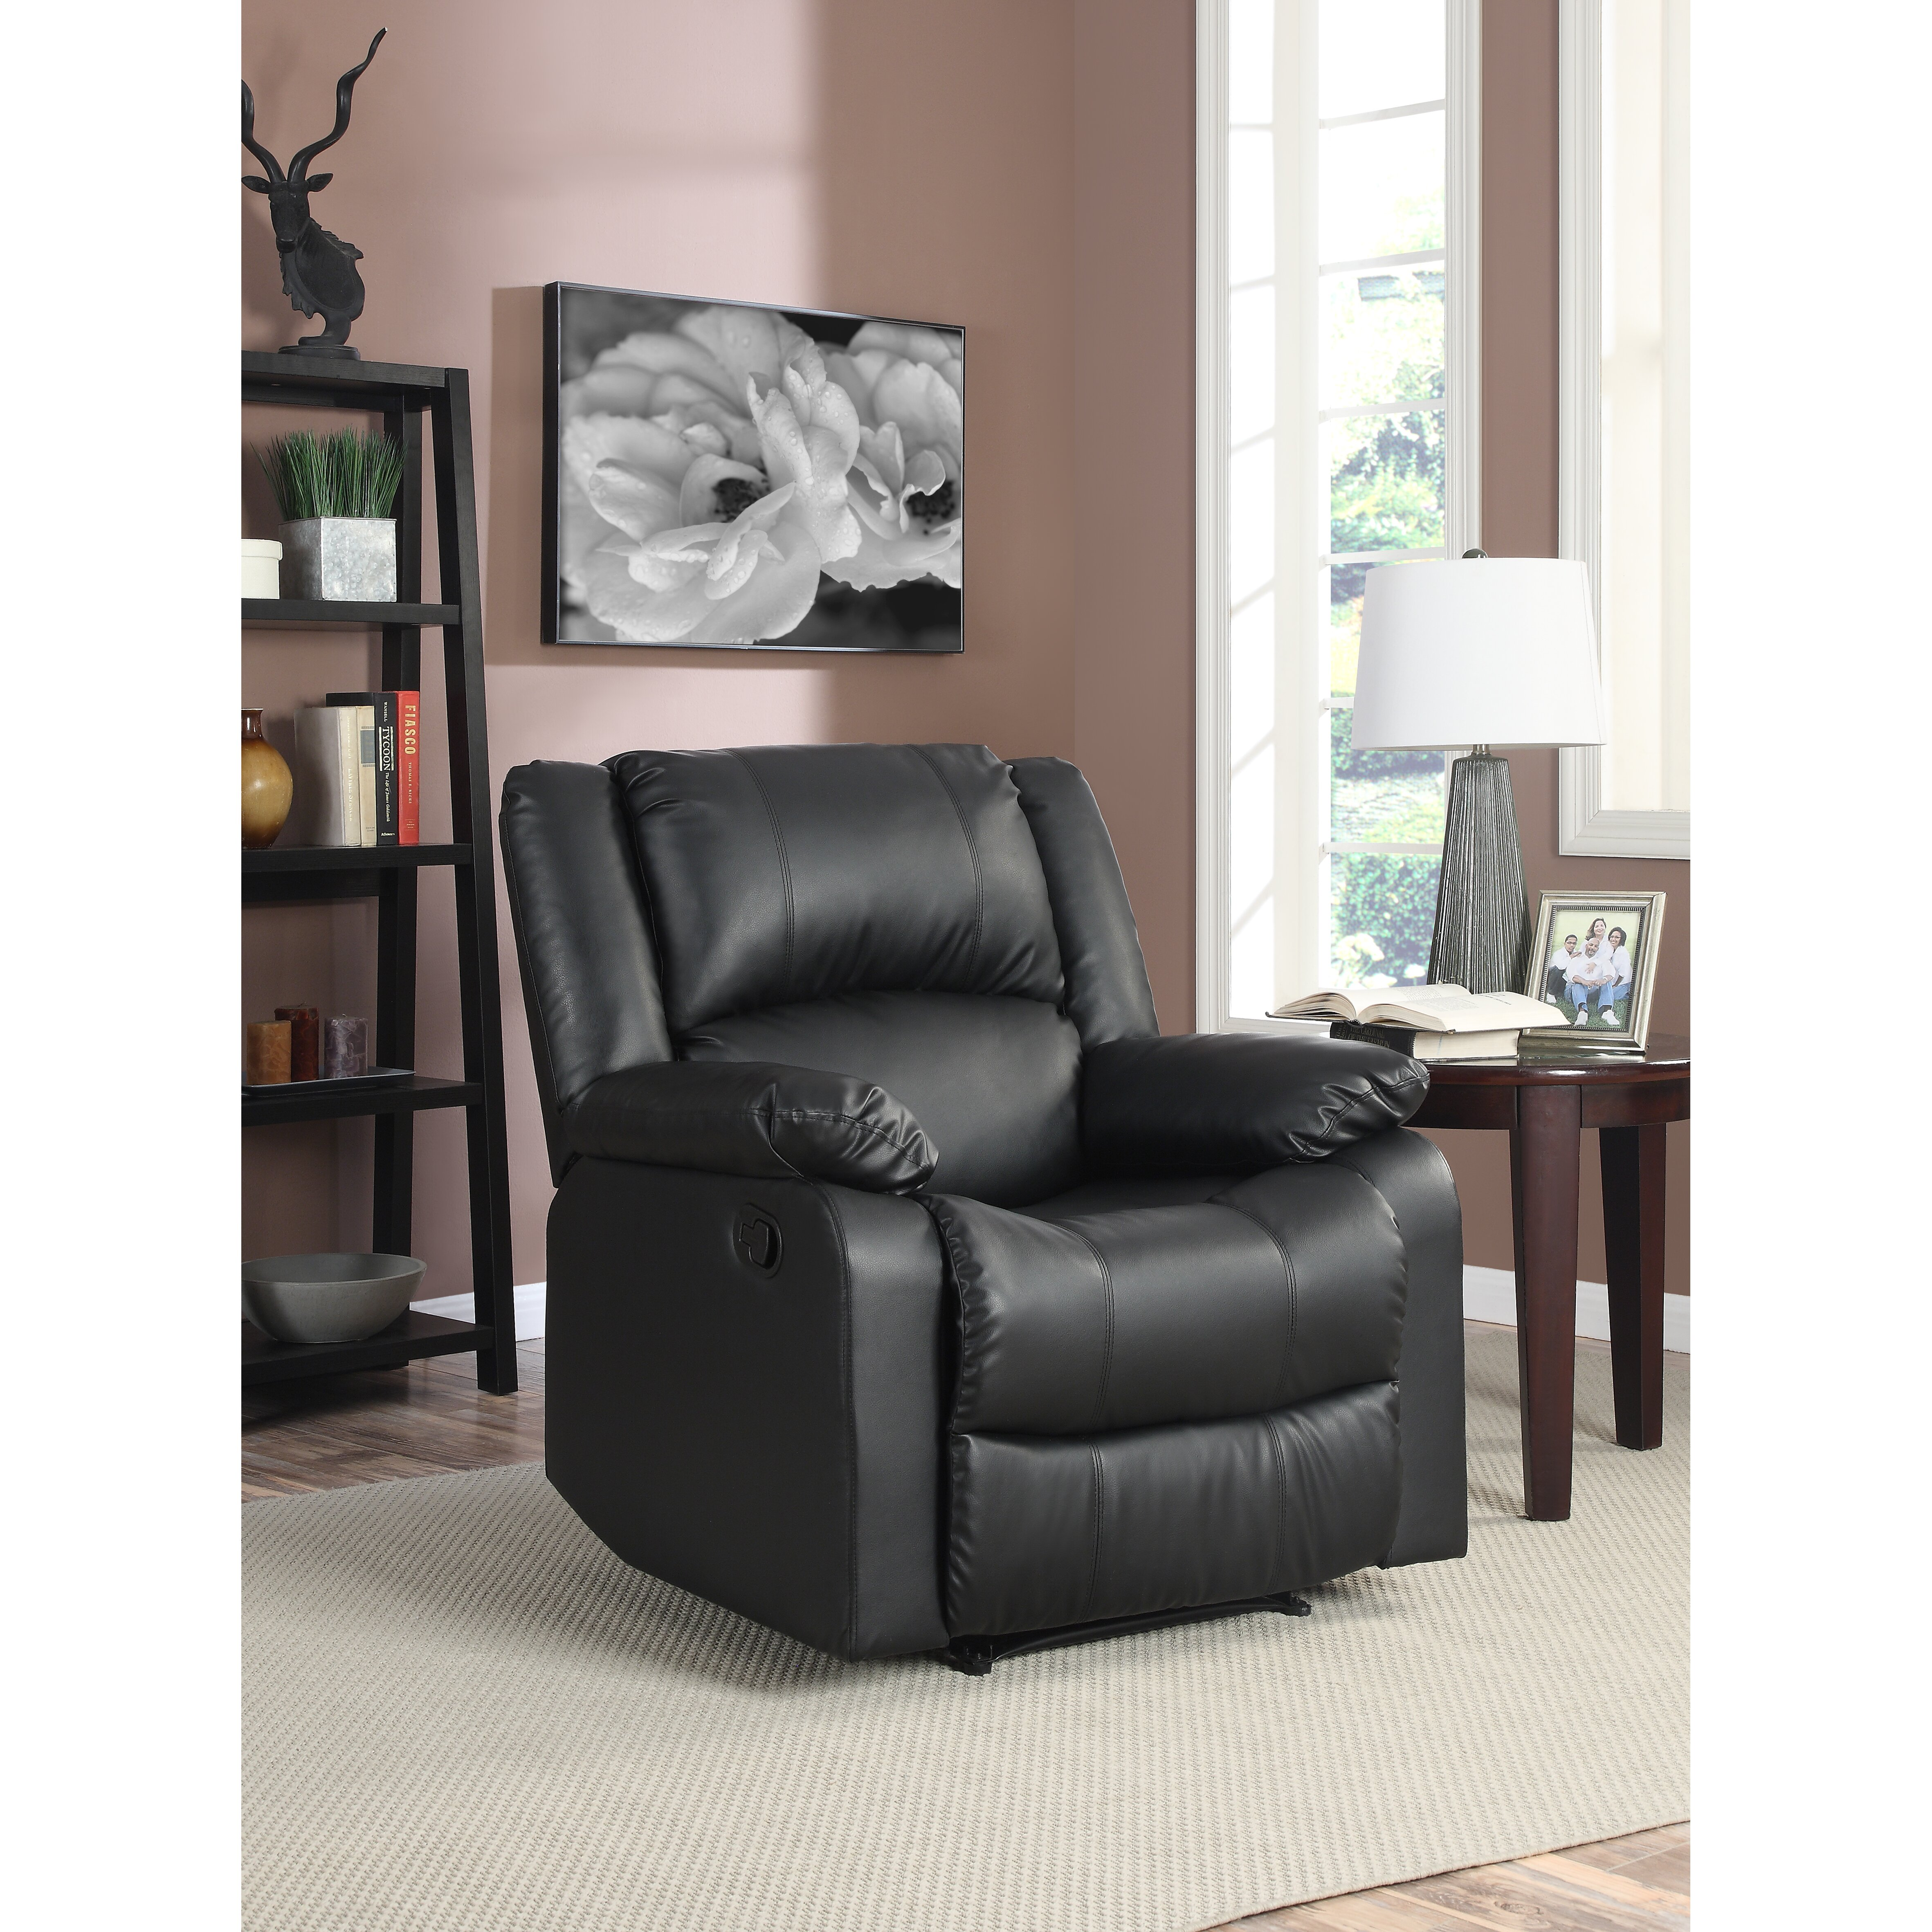 lifestyle solutions warren recliner uamp reviews wayfair with recliners on sale under